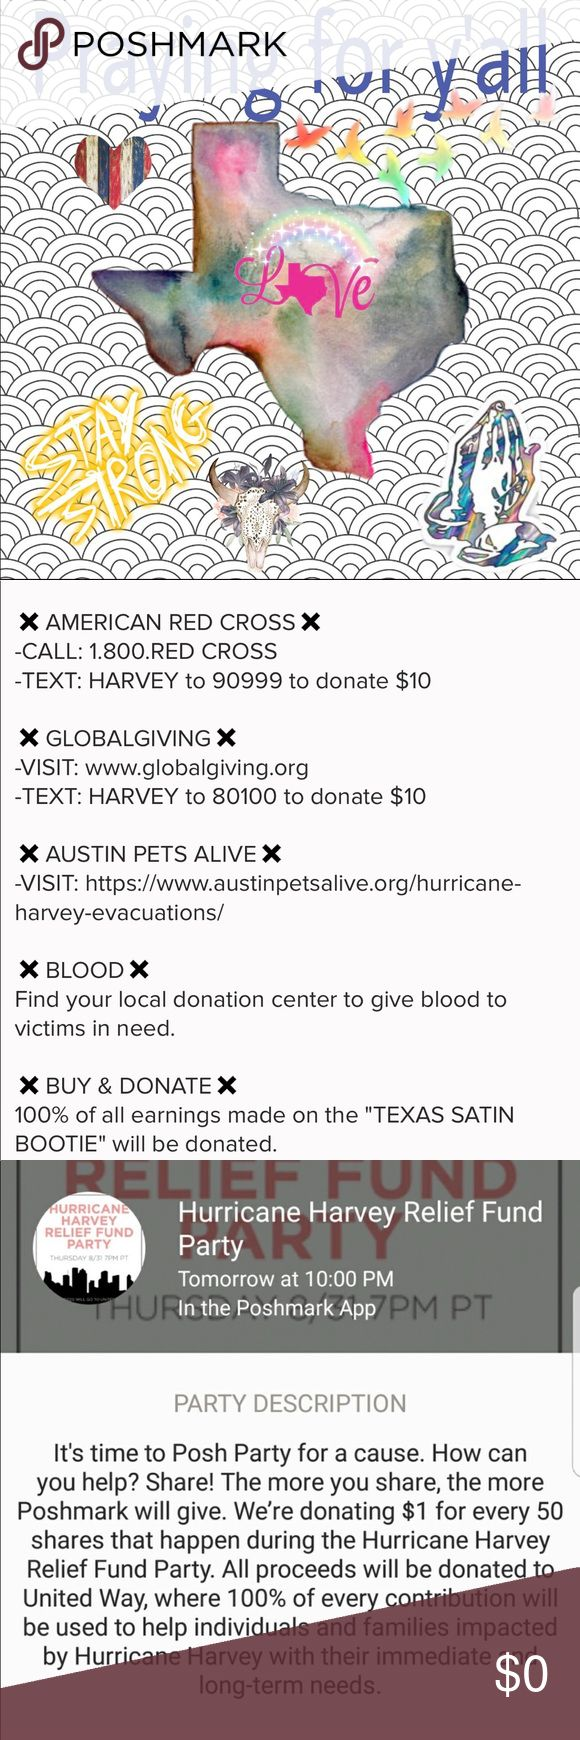 Prayers for Texas. Please view a list of ways to help out in my photos section. Also, please share this listing to create awareness that Poshmark is throwing a hurricane Harvey fundraising party at 10pm tomorrow.See photos for details. God bless Texas. Other